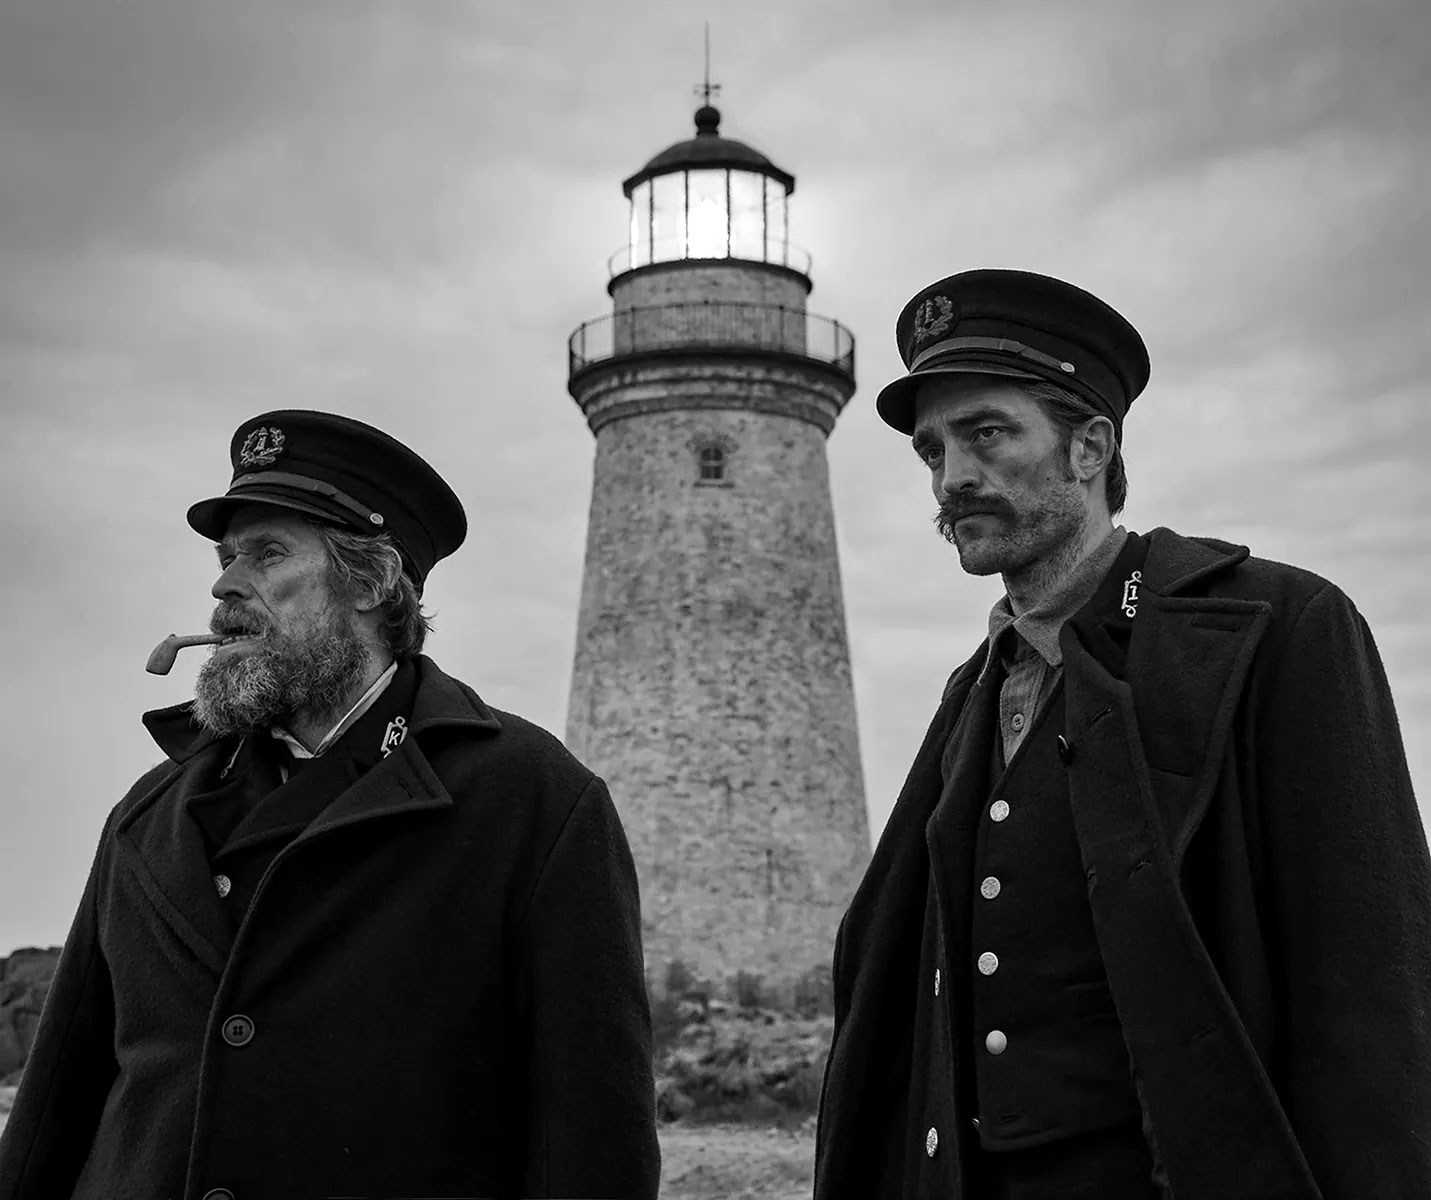 Willem Dafoe (left) and Robert Pattinson in The Lighthouse